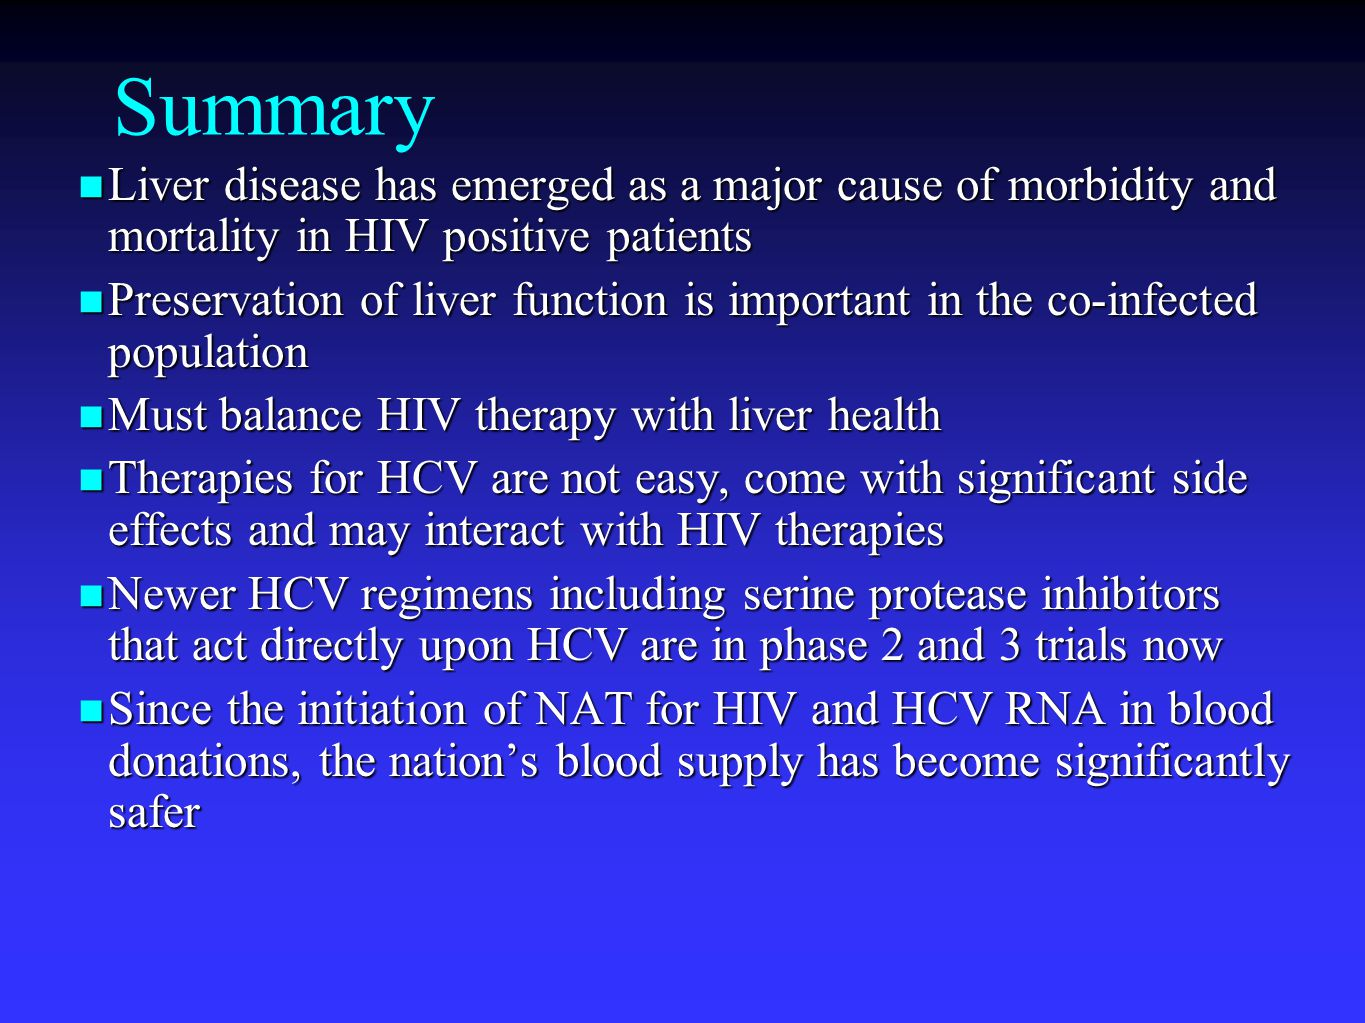 Summary Liver disease has emerged as a major cause of morbidity and mortality in HIV positive patients Liver disease has emerged as a major cause of morbidity and mortality in HIV positive patients Preservation of liver function is important in the co-infected population Preservation of liver function is important in the co-infected population Must balance HIV therapy with liver health Must balance HIV therapy with liver health Therapies for HCV are not easy, come with significant side effects and may interact with HIV therapies Therapies for HCV are not easy, come with significant side effects and may interact with HIV therapies Newer HCV regimens including serine protease inhibitors that act directly upon HCV are in phase 2 and 3 trials now Newer HCV regimens including serine protease inhibitors that act directly upon HCV are in phase 2 and 3 trials now Since the initiation of NAT for HIV and HCV RNA in blood donations, the nation's blood supply has become significantly safer Since the initiation of NAT for HIV and HCV RNA in blood donations, the nation's blood supply has become significantly safer